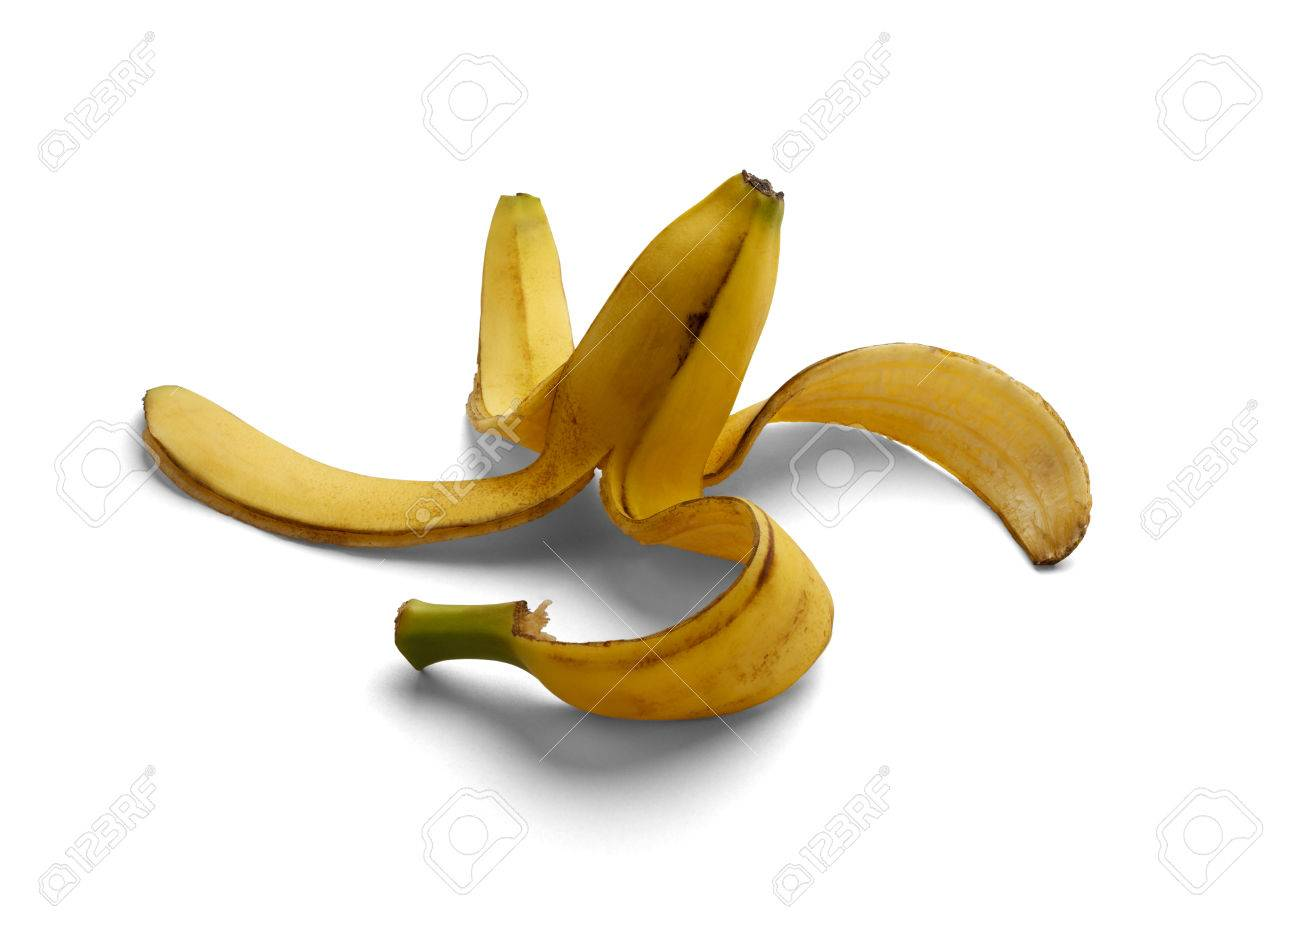 443be6cb791e0 Half Eaten Banana with Peel Laying on Ground Isolated on a White Background.  Stock Photo